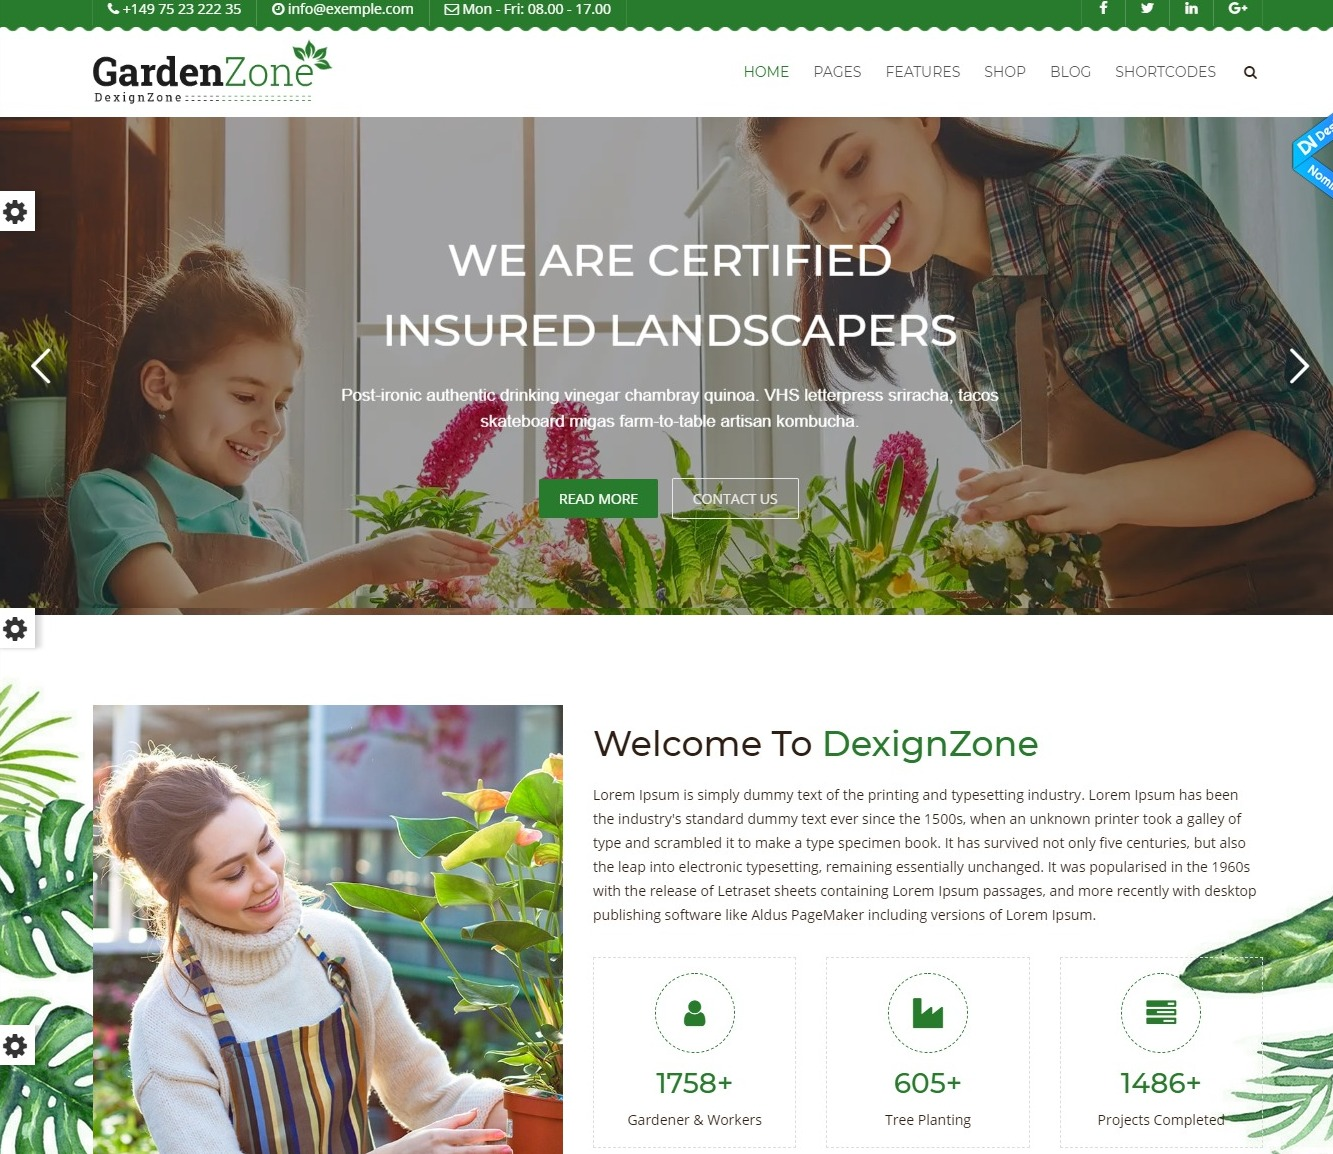 garden-zone-agriculture-website-template